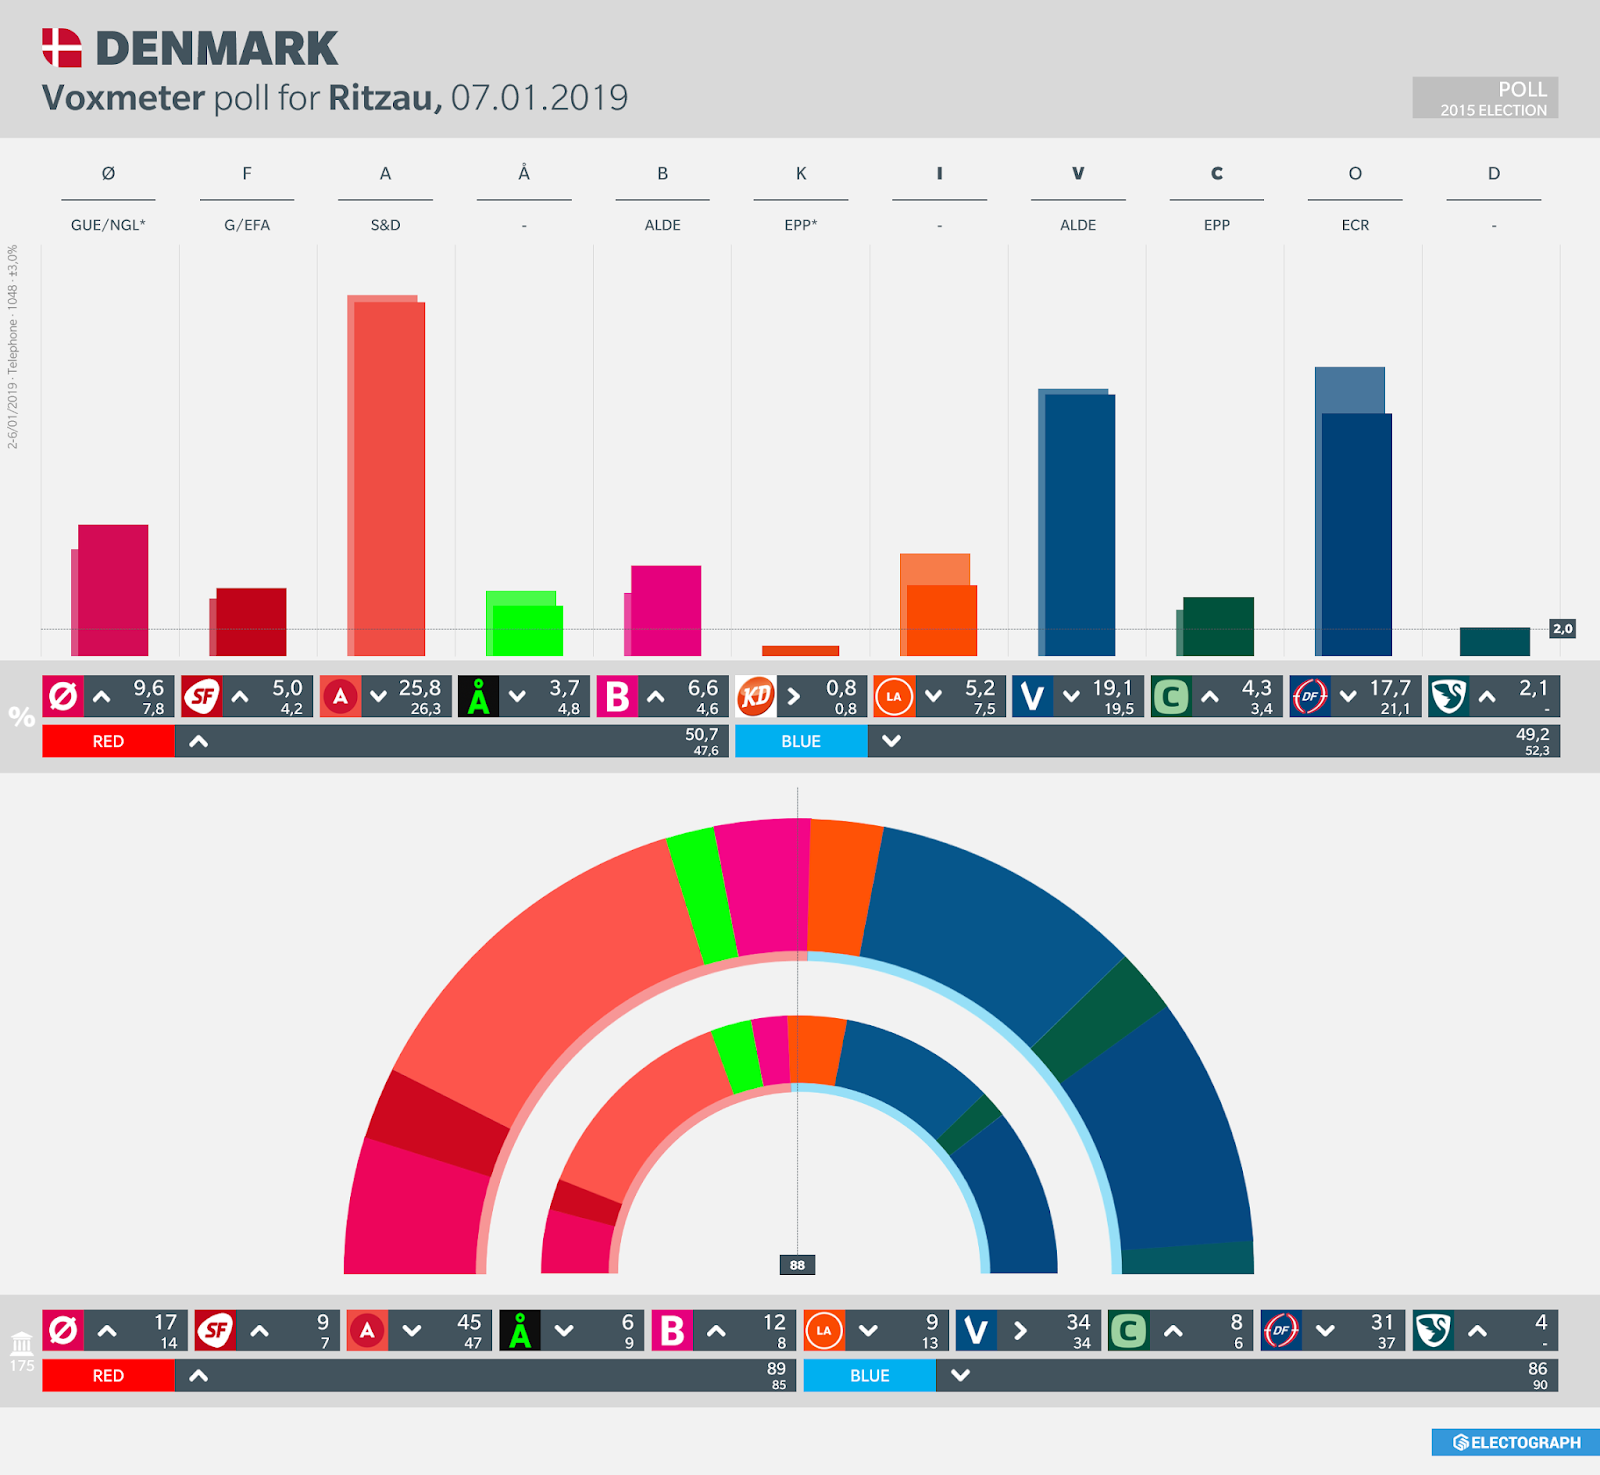 DENMARK: Voxmeter poll chart for Ritzau, 7 January 2019